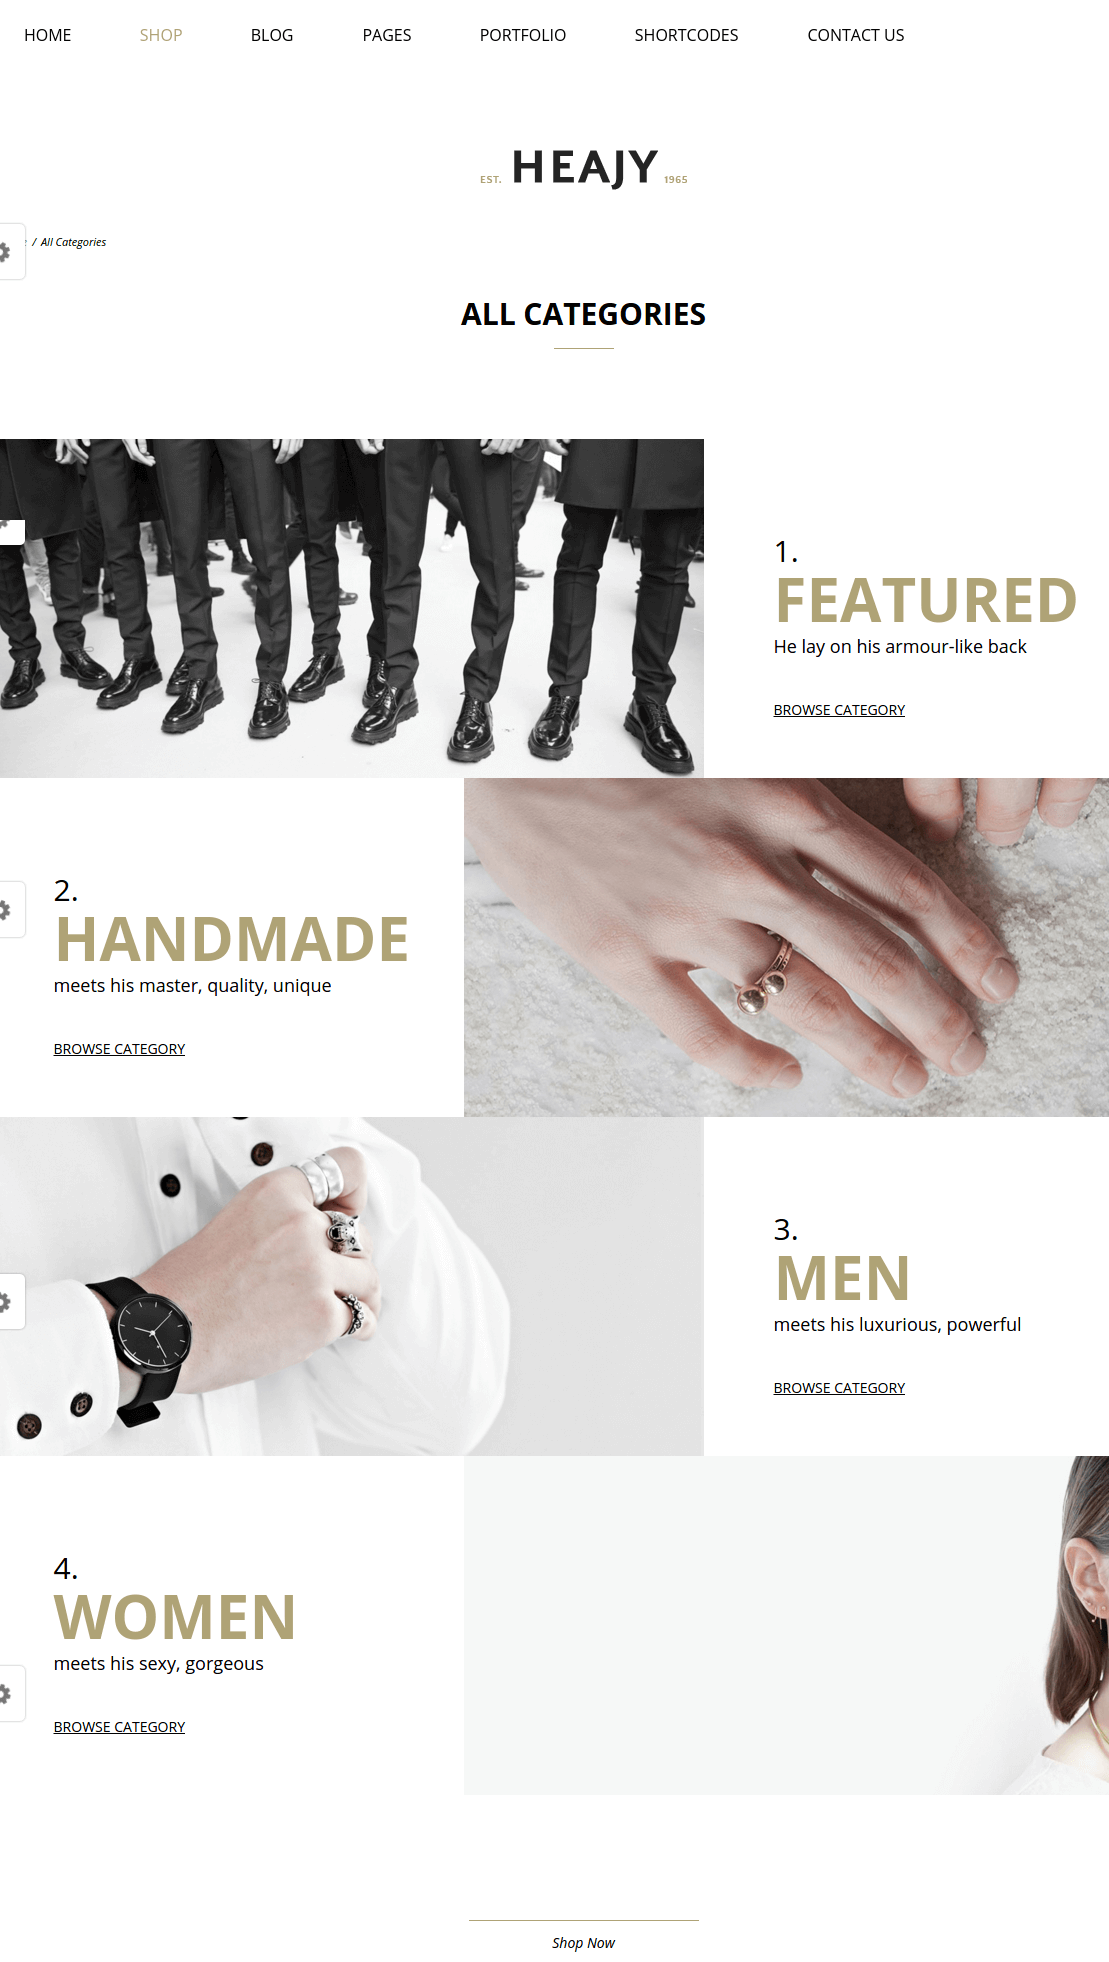 All categories Page of Heajy